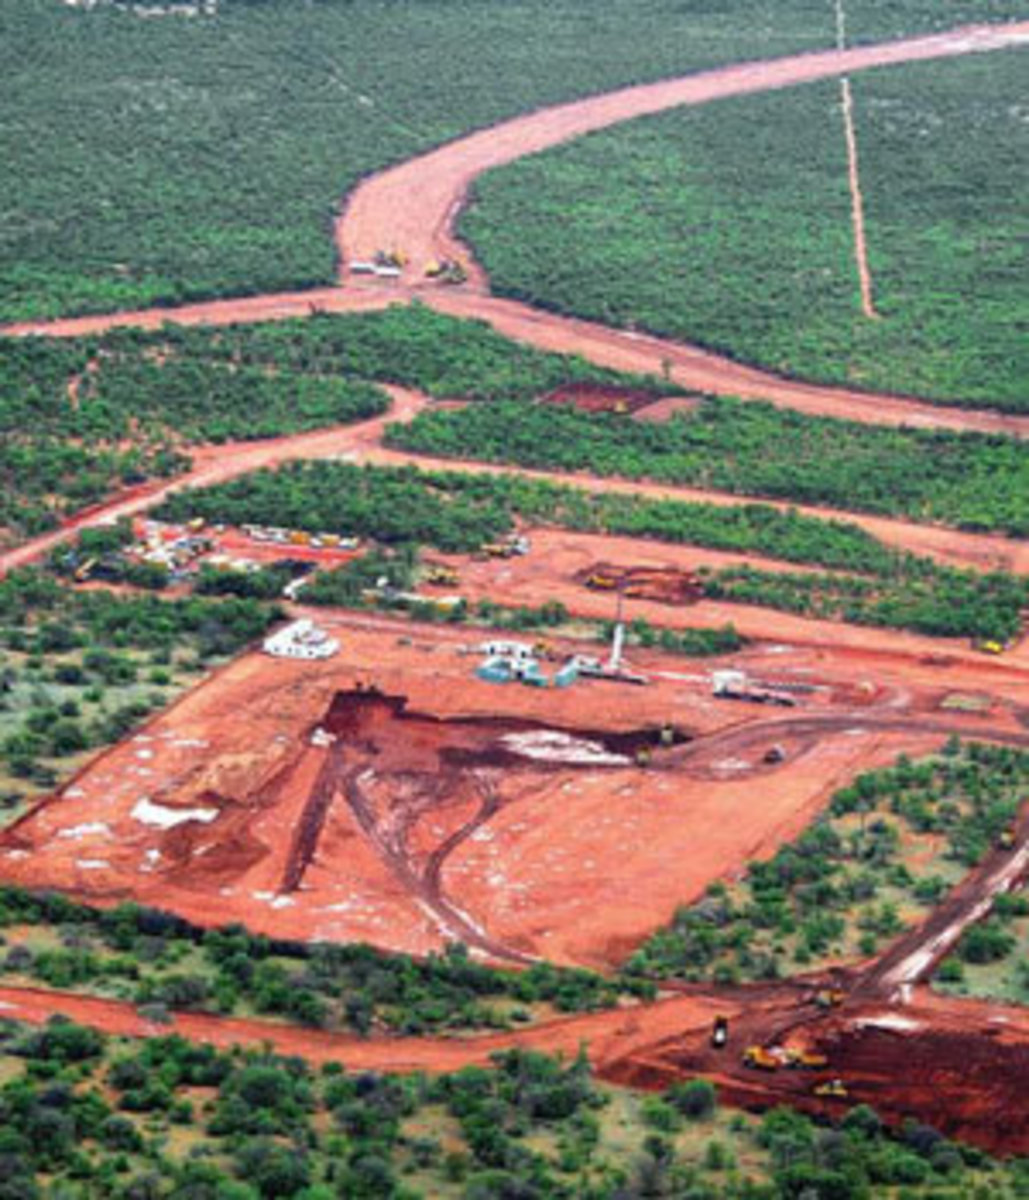 Mapungubwe aerial 1. Aerial photos taken a few months ago(around -2010 show the destruction  raken place, mined by an Australian company Coal of Africa Limited(CoAL) which was abruptly halted inits operations in Vele coal mine, 6 k km from Mapungubwe